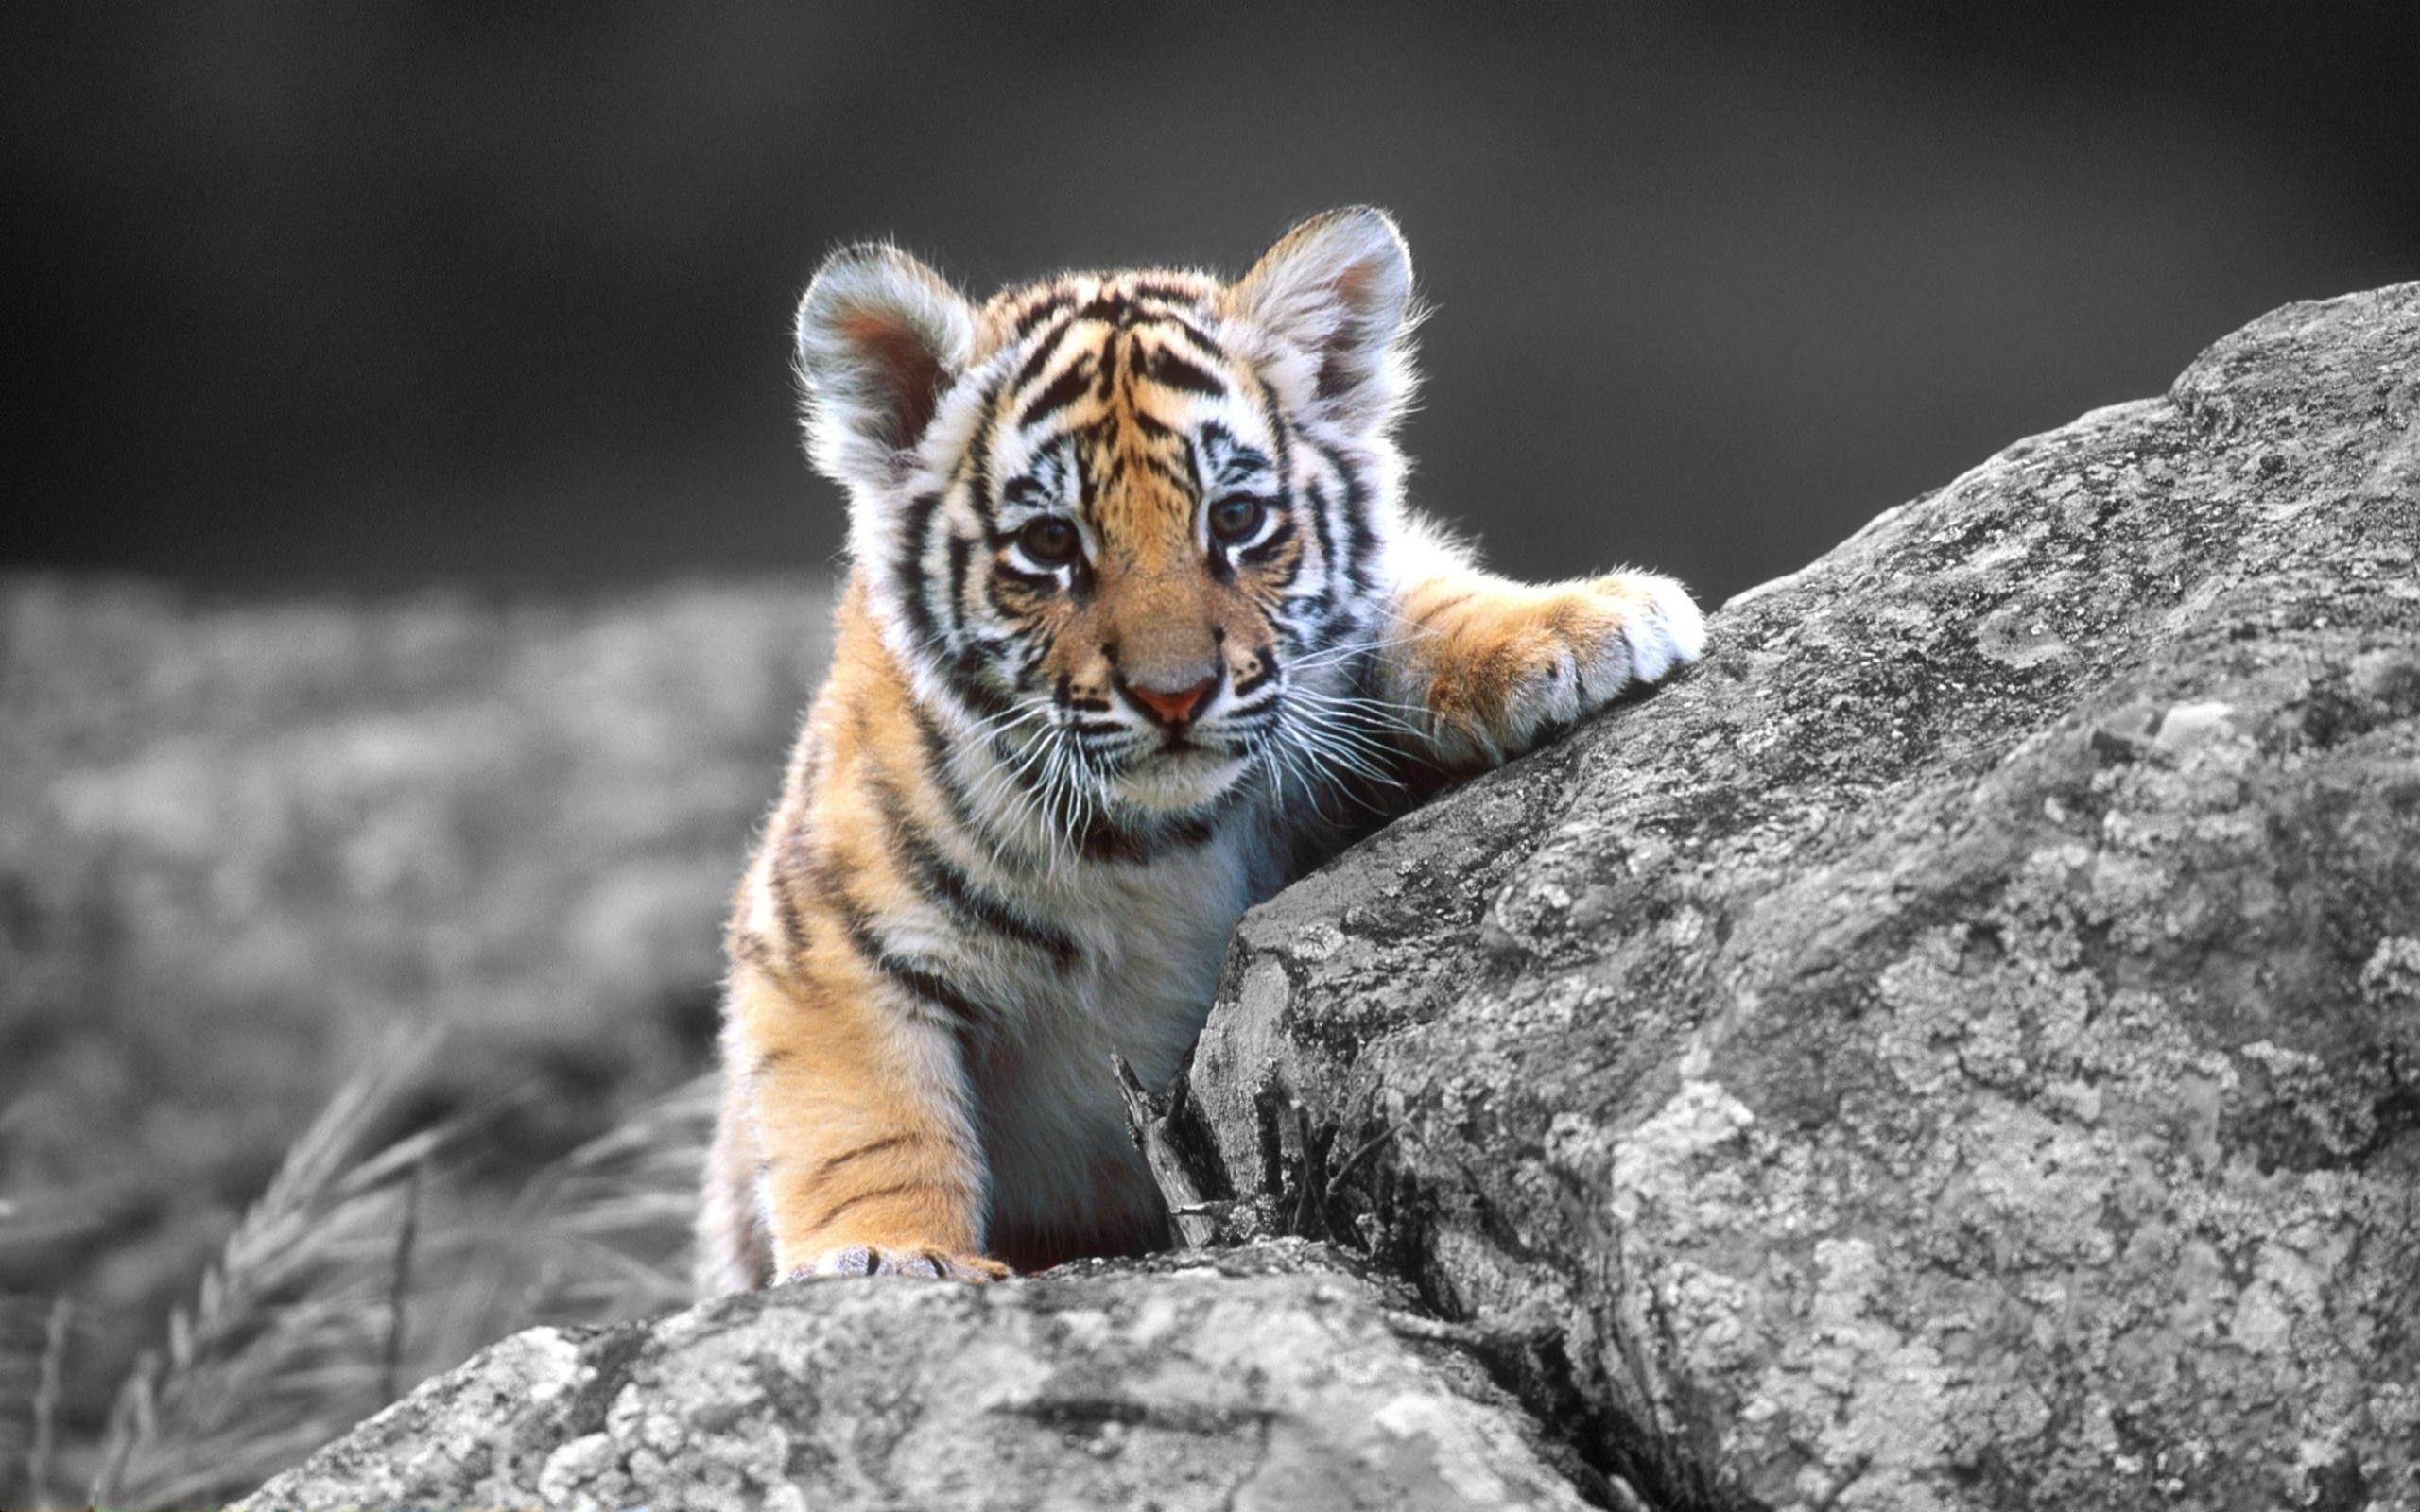 Cute Baby Tigers Wallpapers - Wallpaper Cave